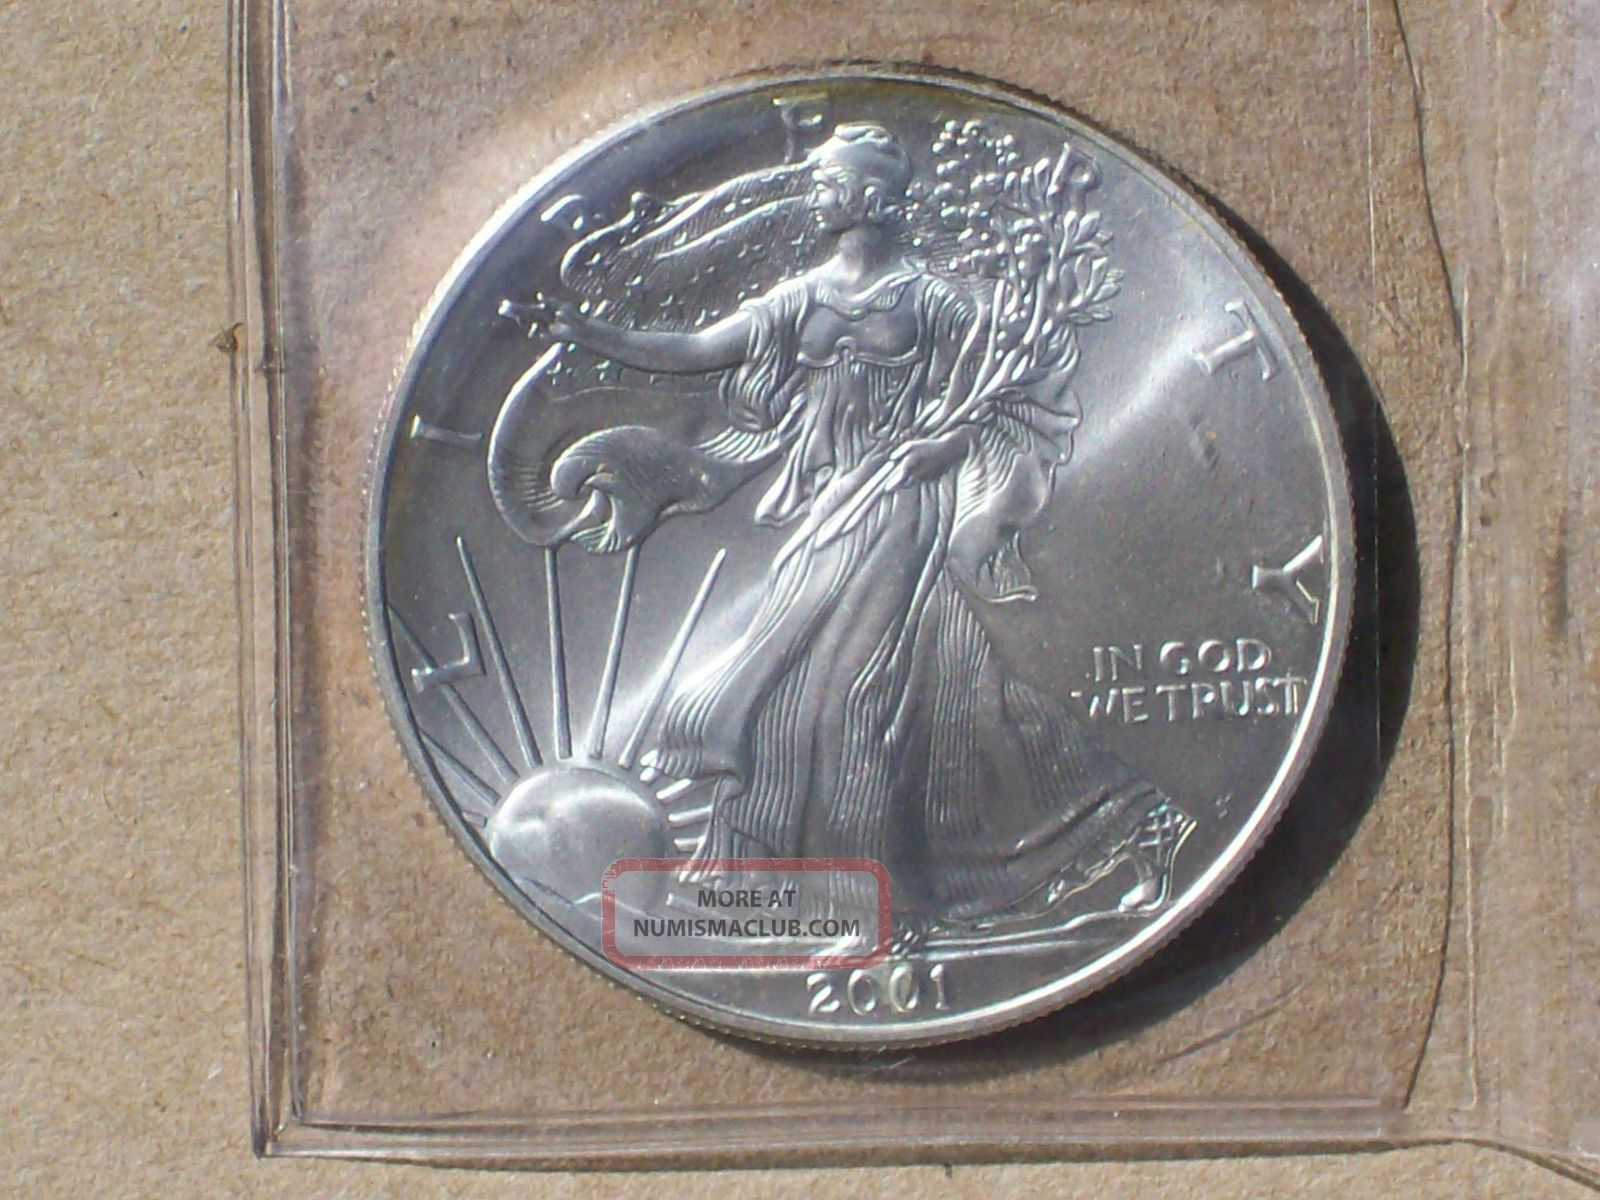 Uncirculated Pristine 2001 Walking Liberty 1 Oz Fine